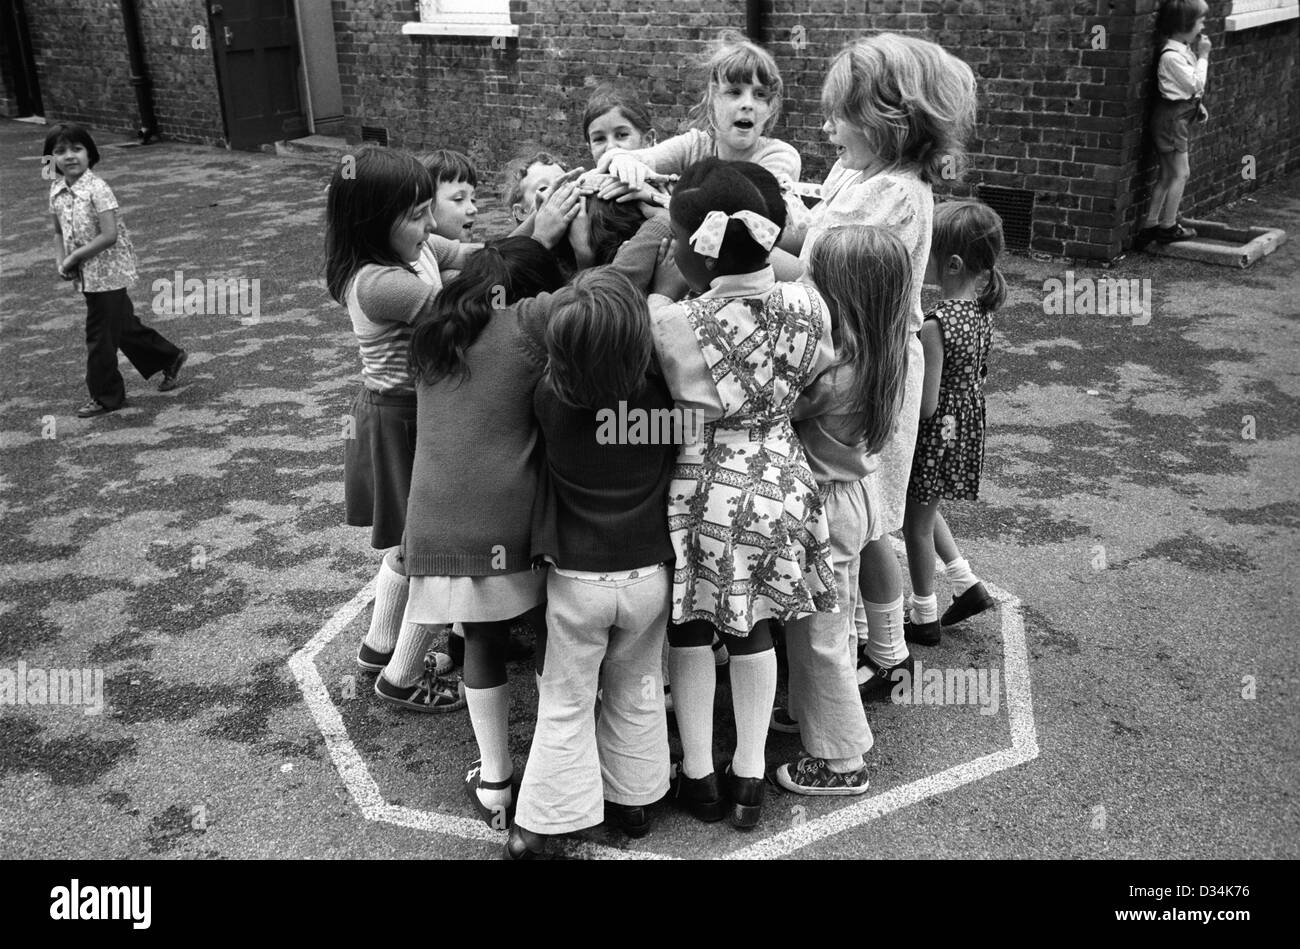 School children girls playing playground games. 1970s South London. England. 70s UK HOMER SYKES - Stock Image